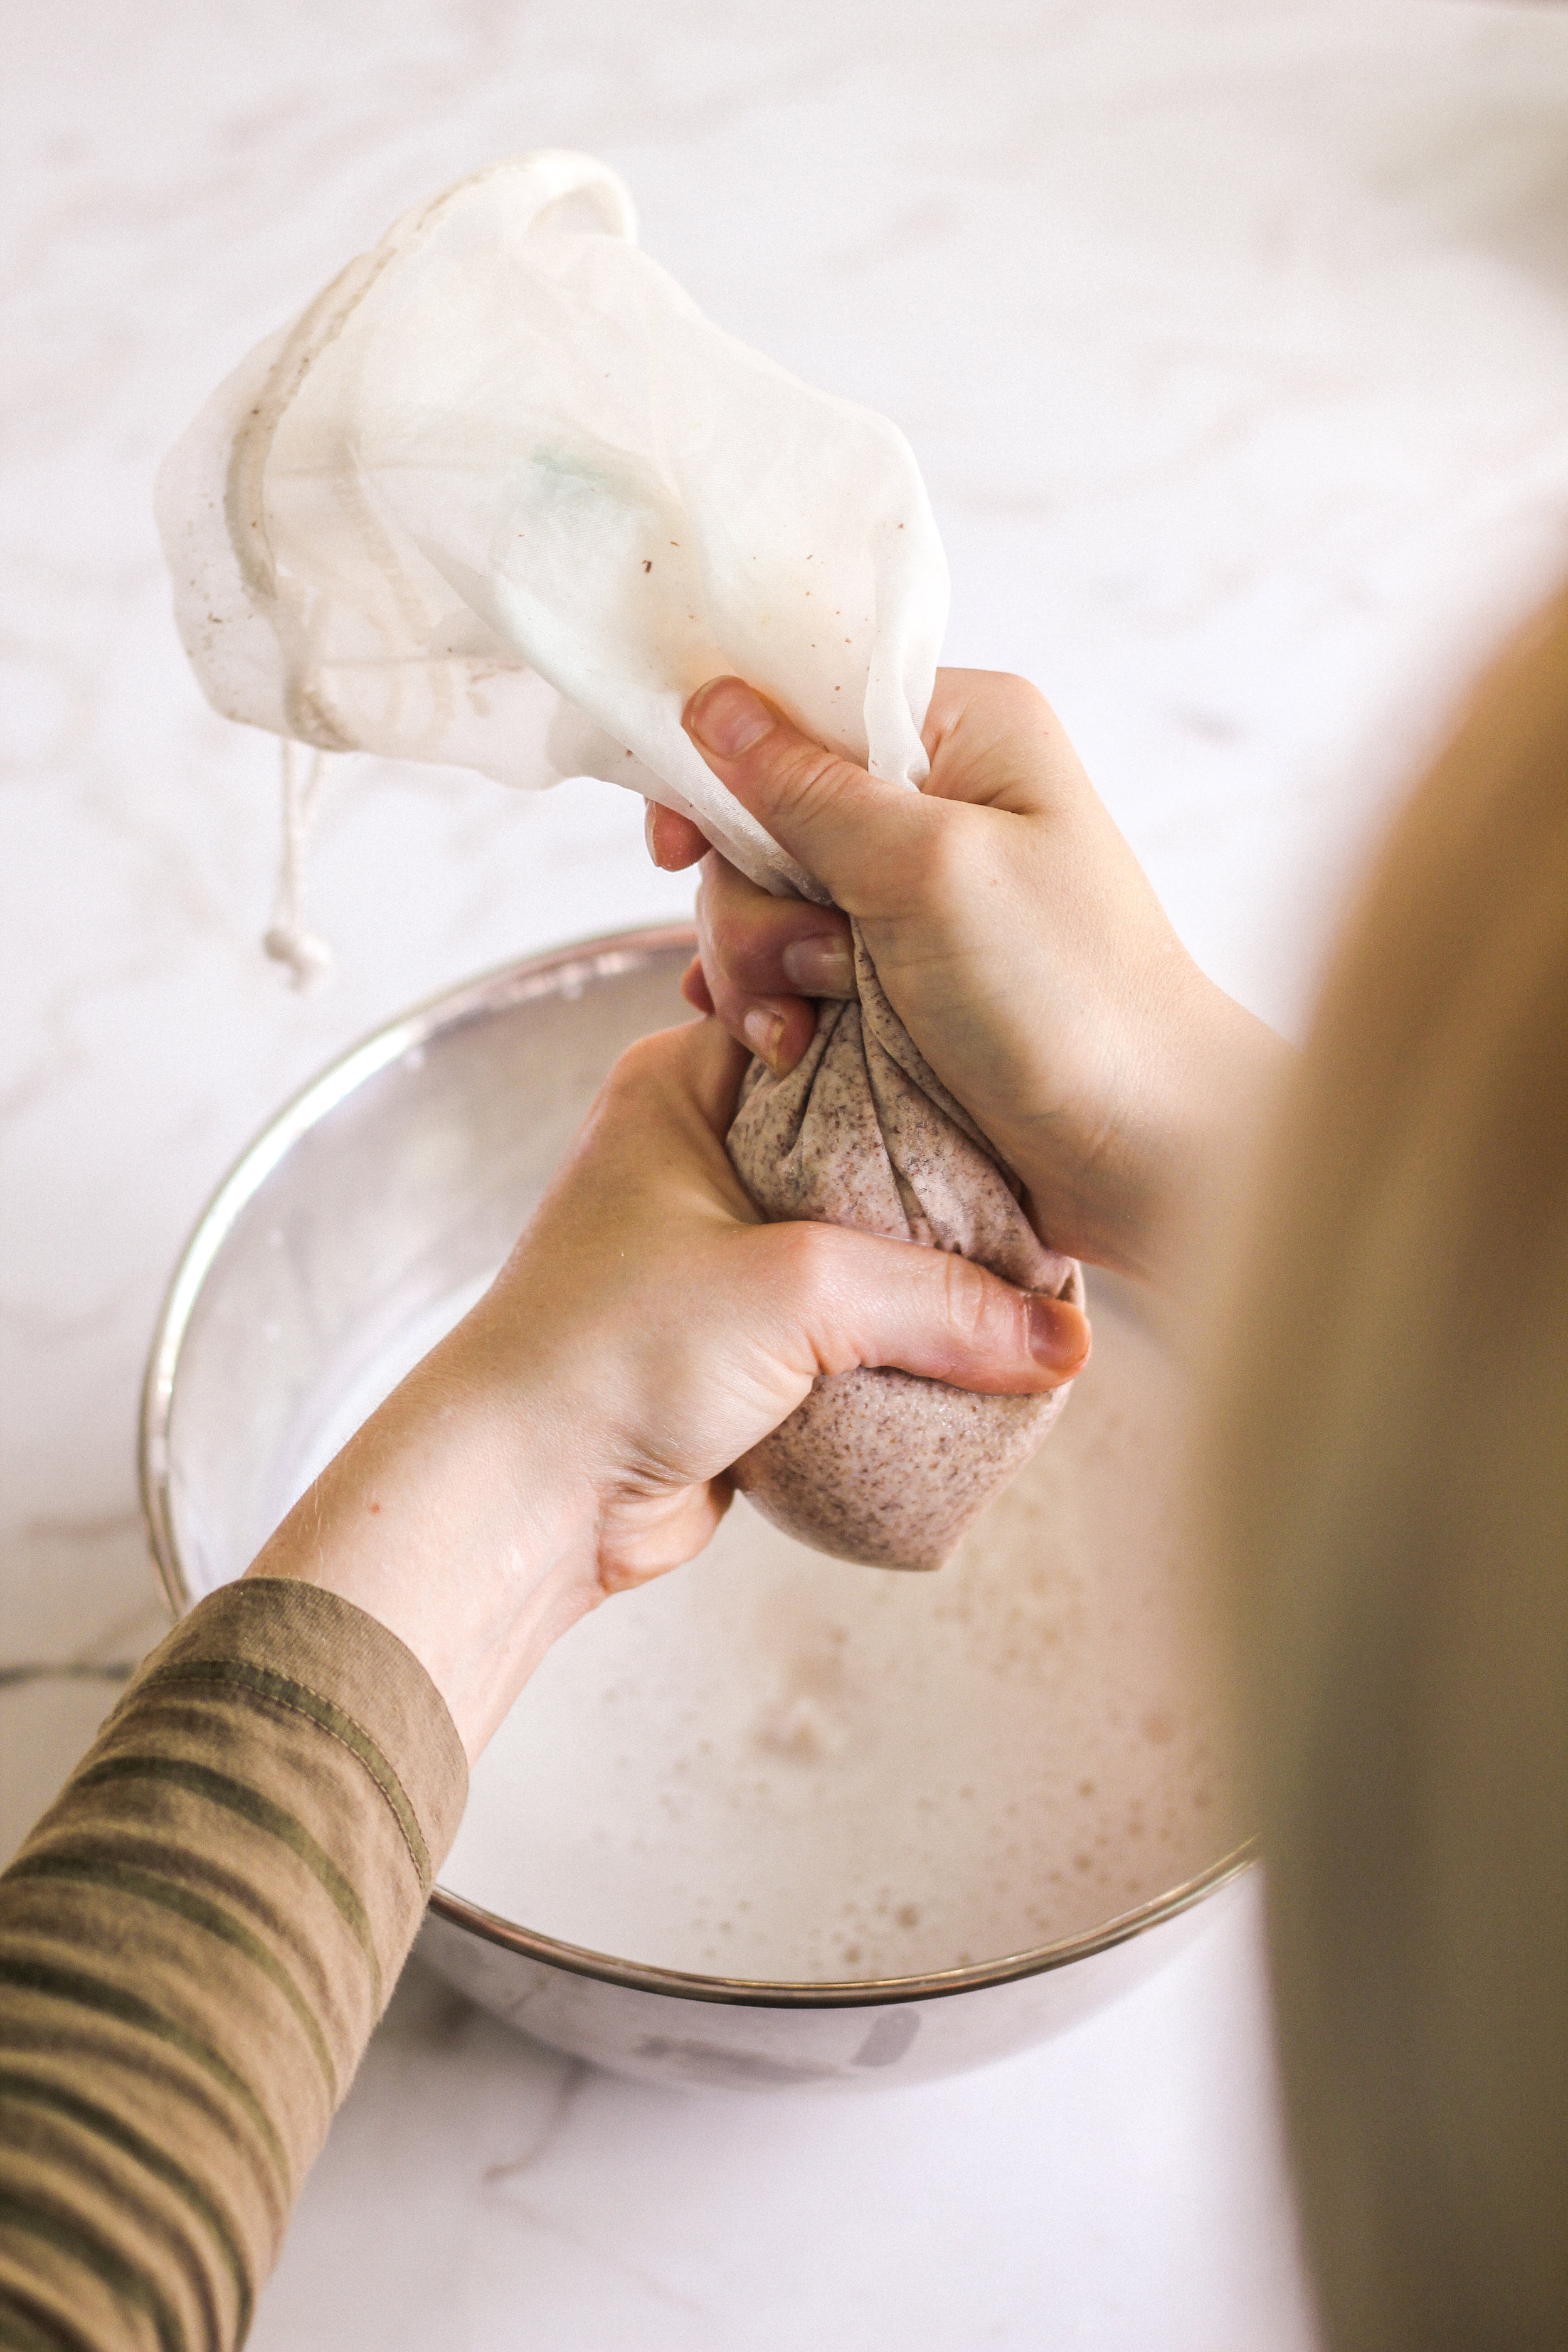 Squeeze your nut milk bag until no more liquid comes out, of course, making sure your hands are clean for this step.